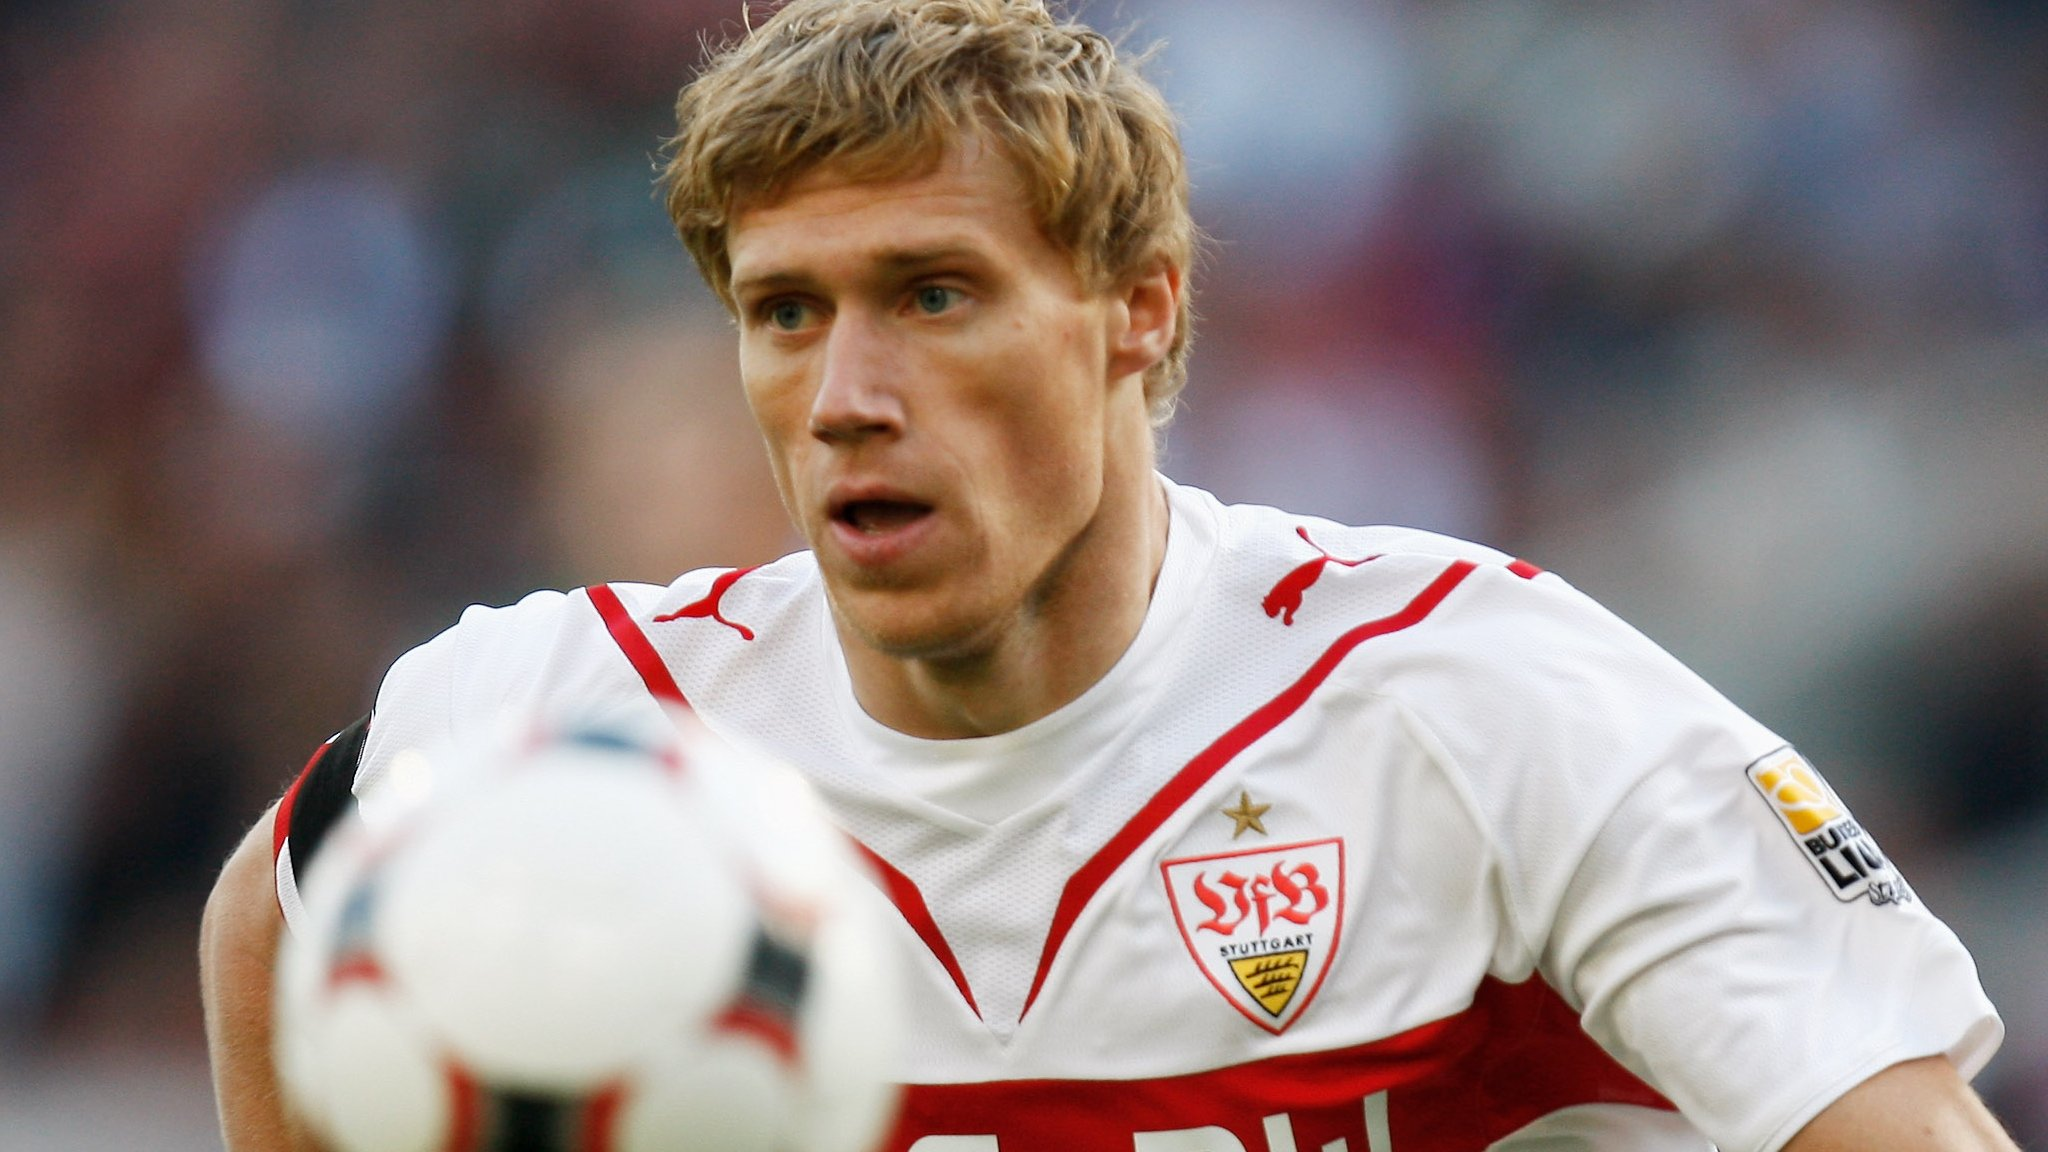 Russian striker Pavel Pogrebnyak's comment on black players 'smells of racism'